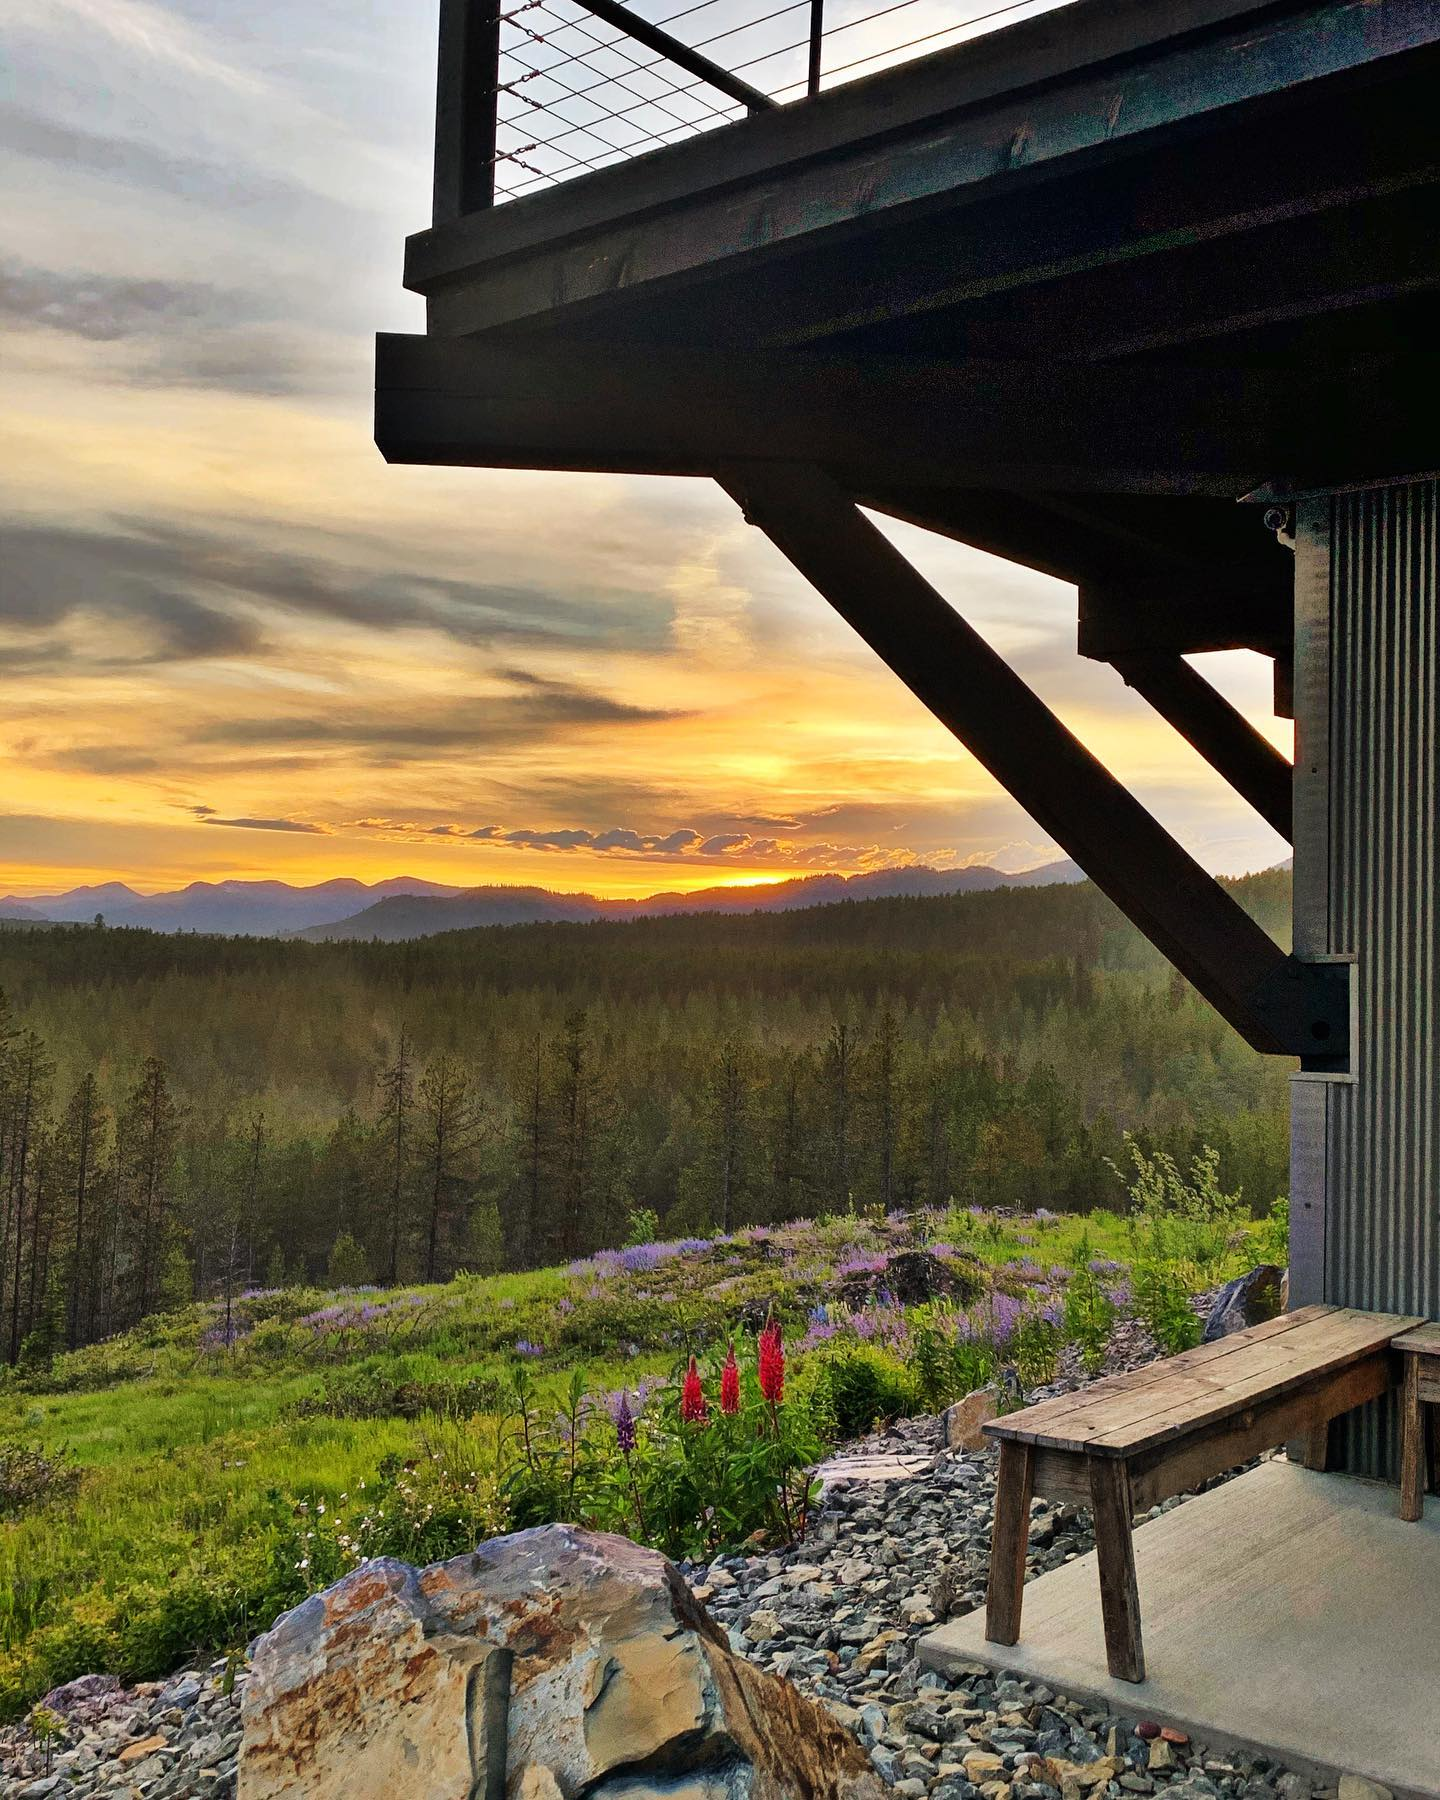 Spring in Montana (the golden glow do to a crazy amount of pollen in the air ) whitefish custom home builder